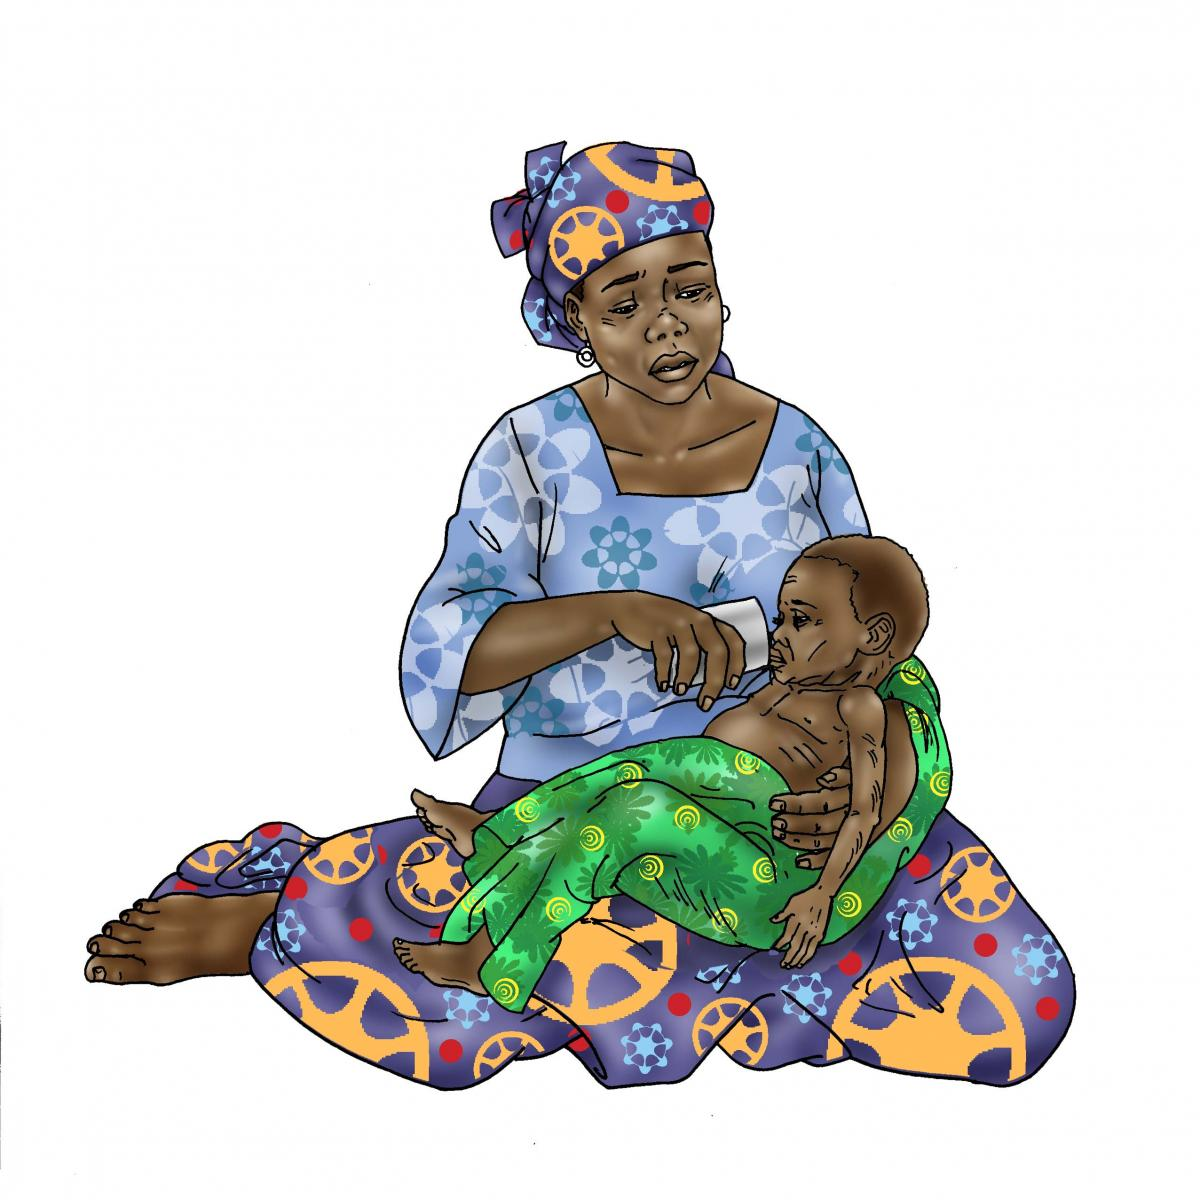 Sick Baby Nutrition - Mother cup feeding sick baby 0-24 mo - 02 - Niger